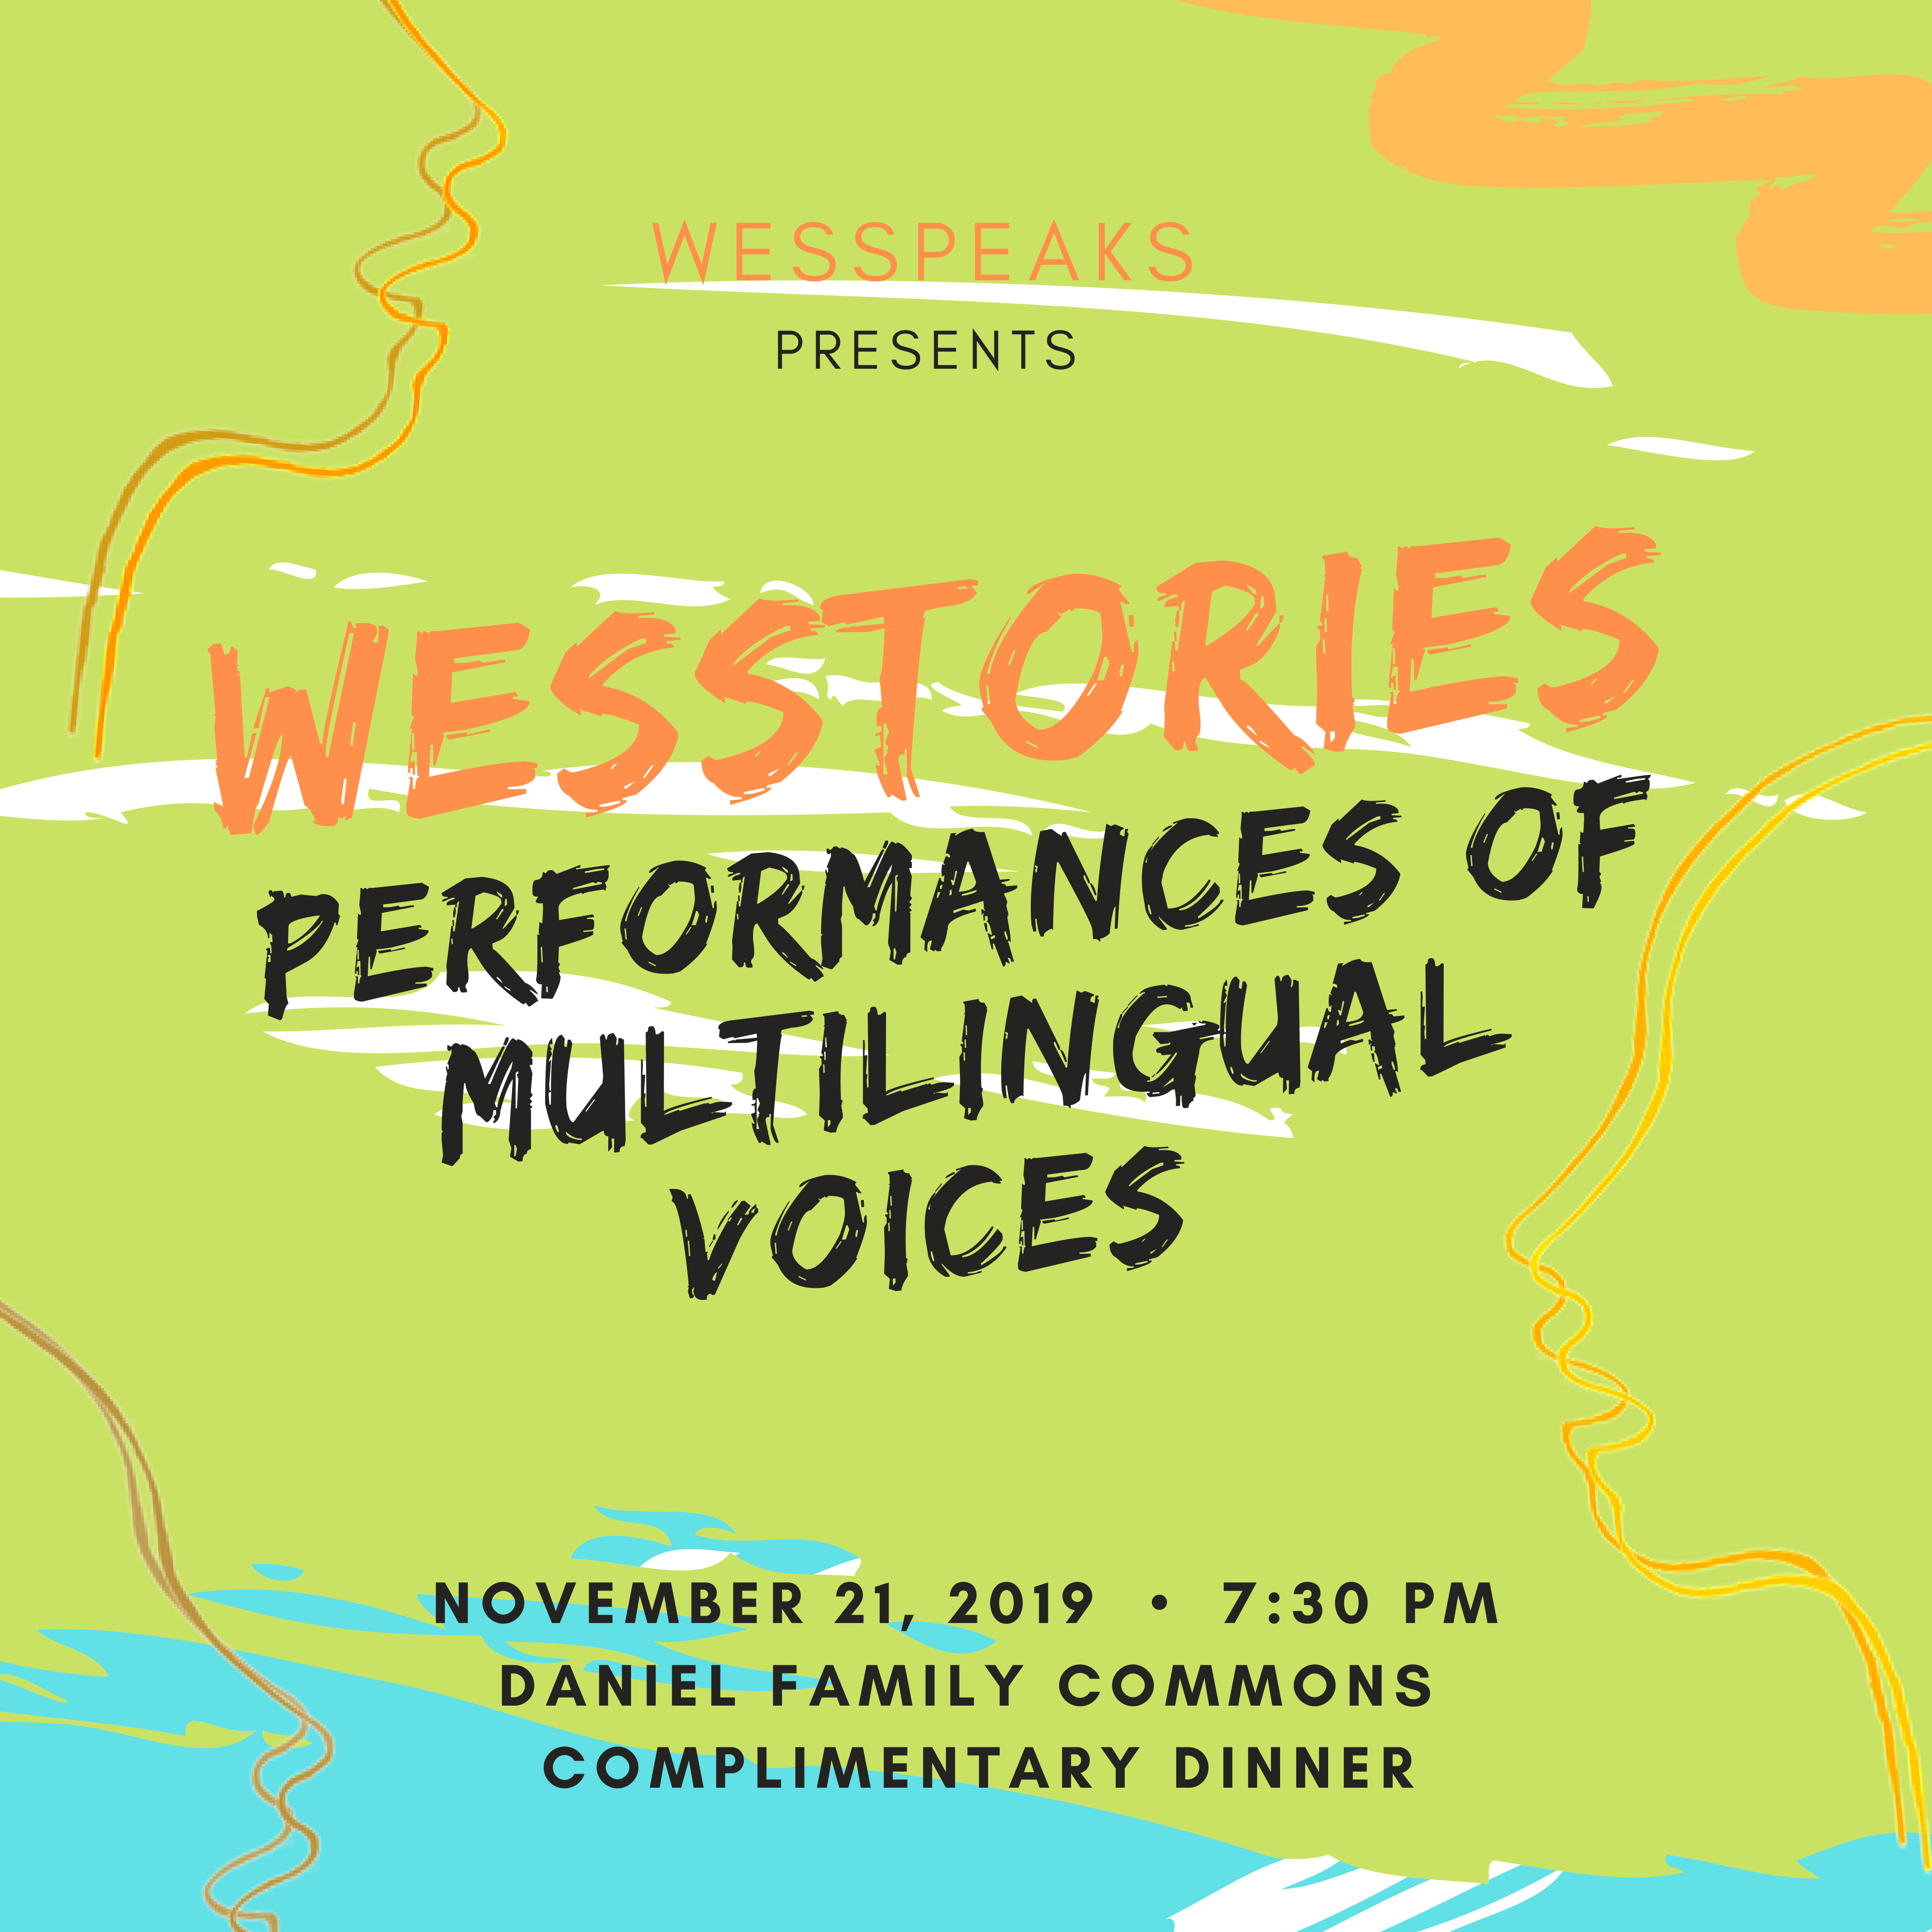 WesStories: Performances of Multilingual Voices